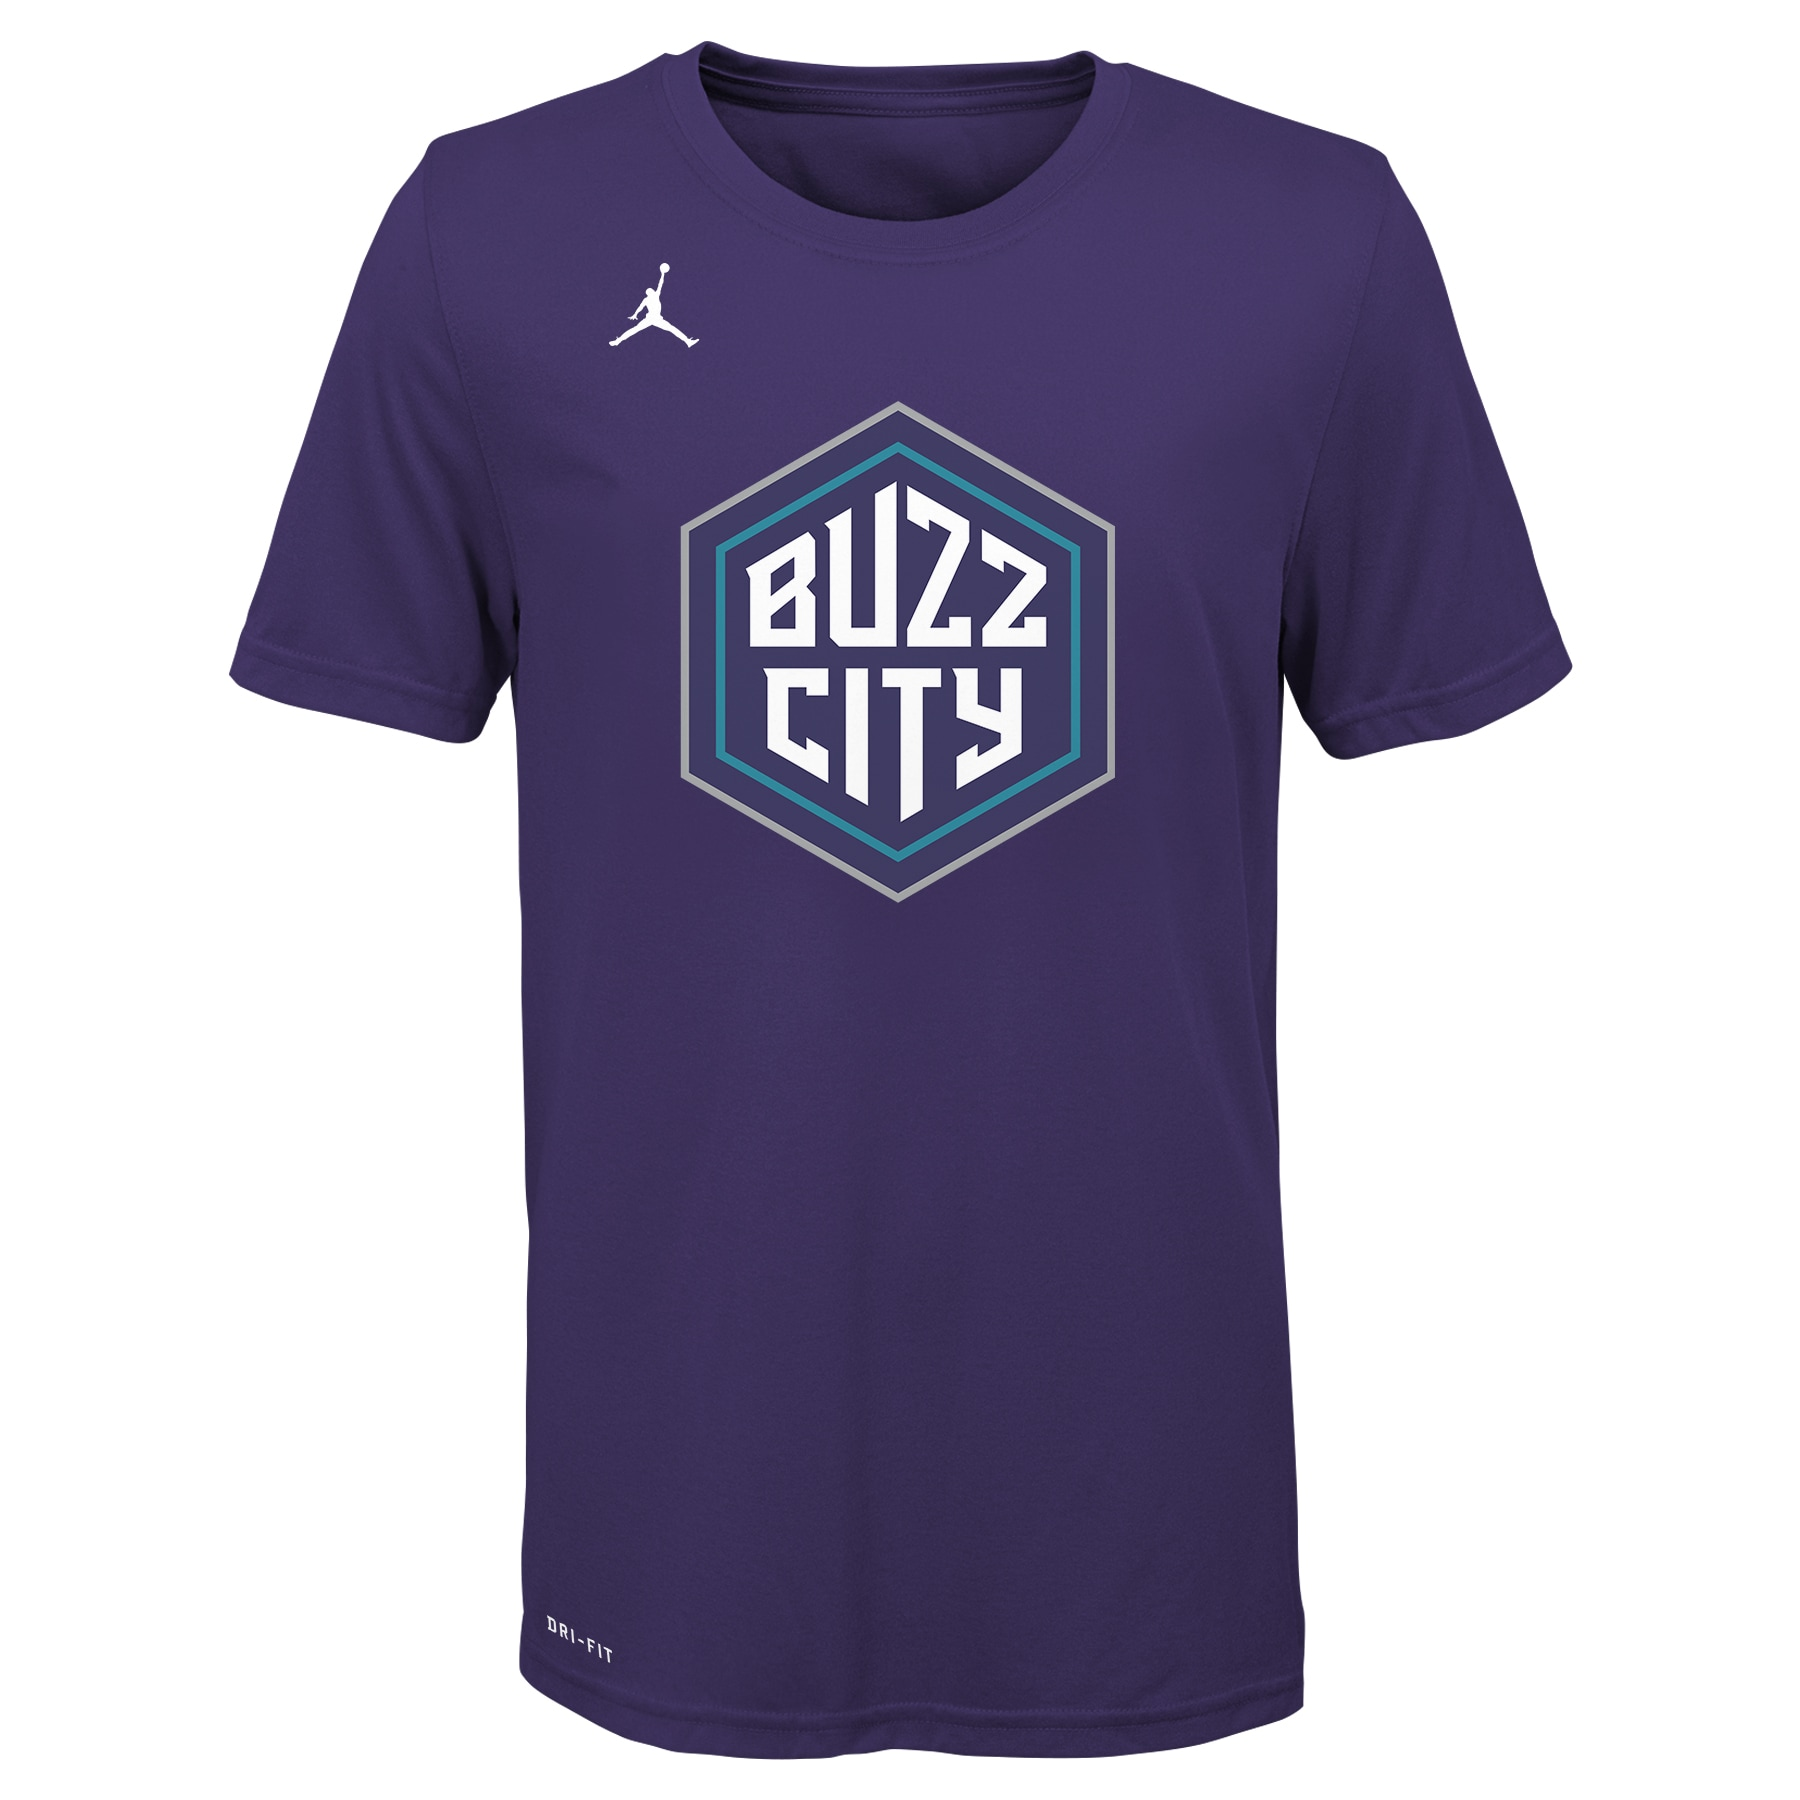 Charlotte Hornets Jordan Brand Youth 2019/20 City Edition Logo T-Shirt - Purple